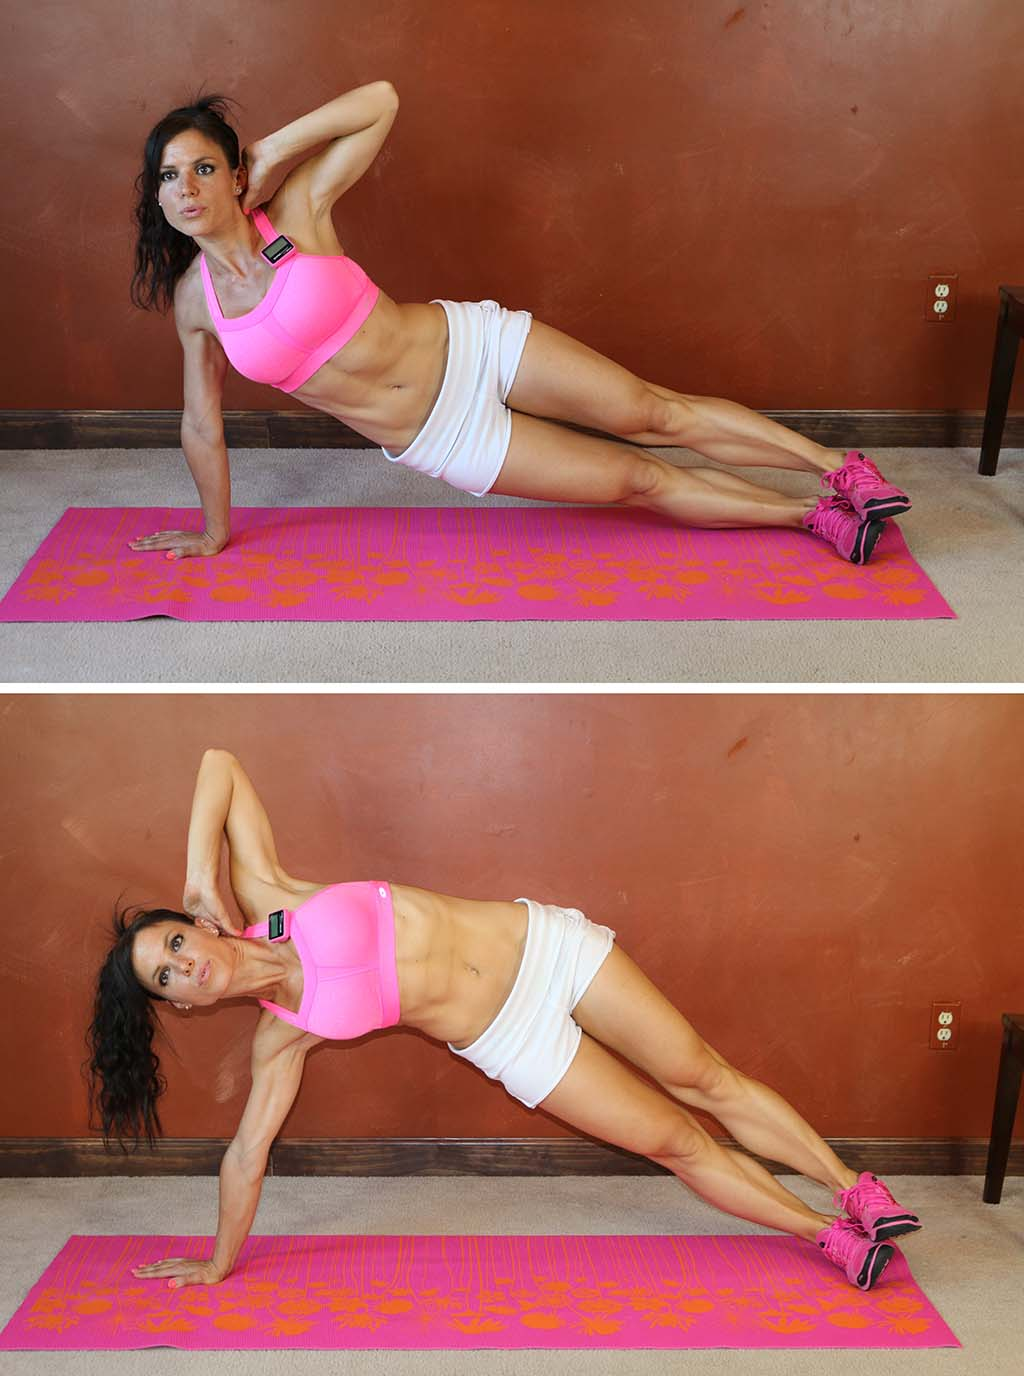 Exercises To Get Flat Stomach & The Sexiest Abs #9: How To Make Side Plank Hip Lifts